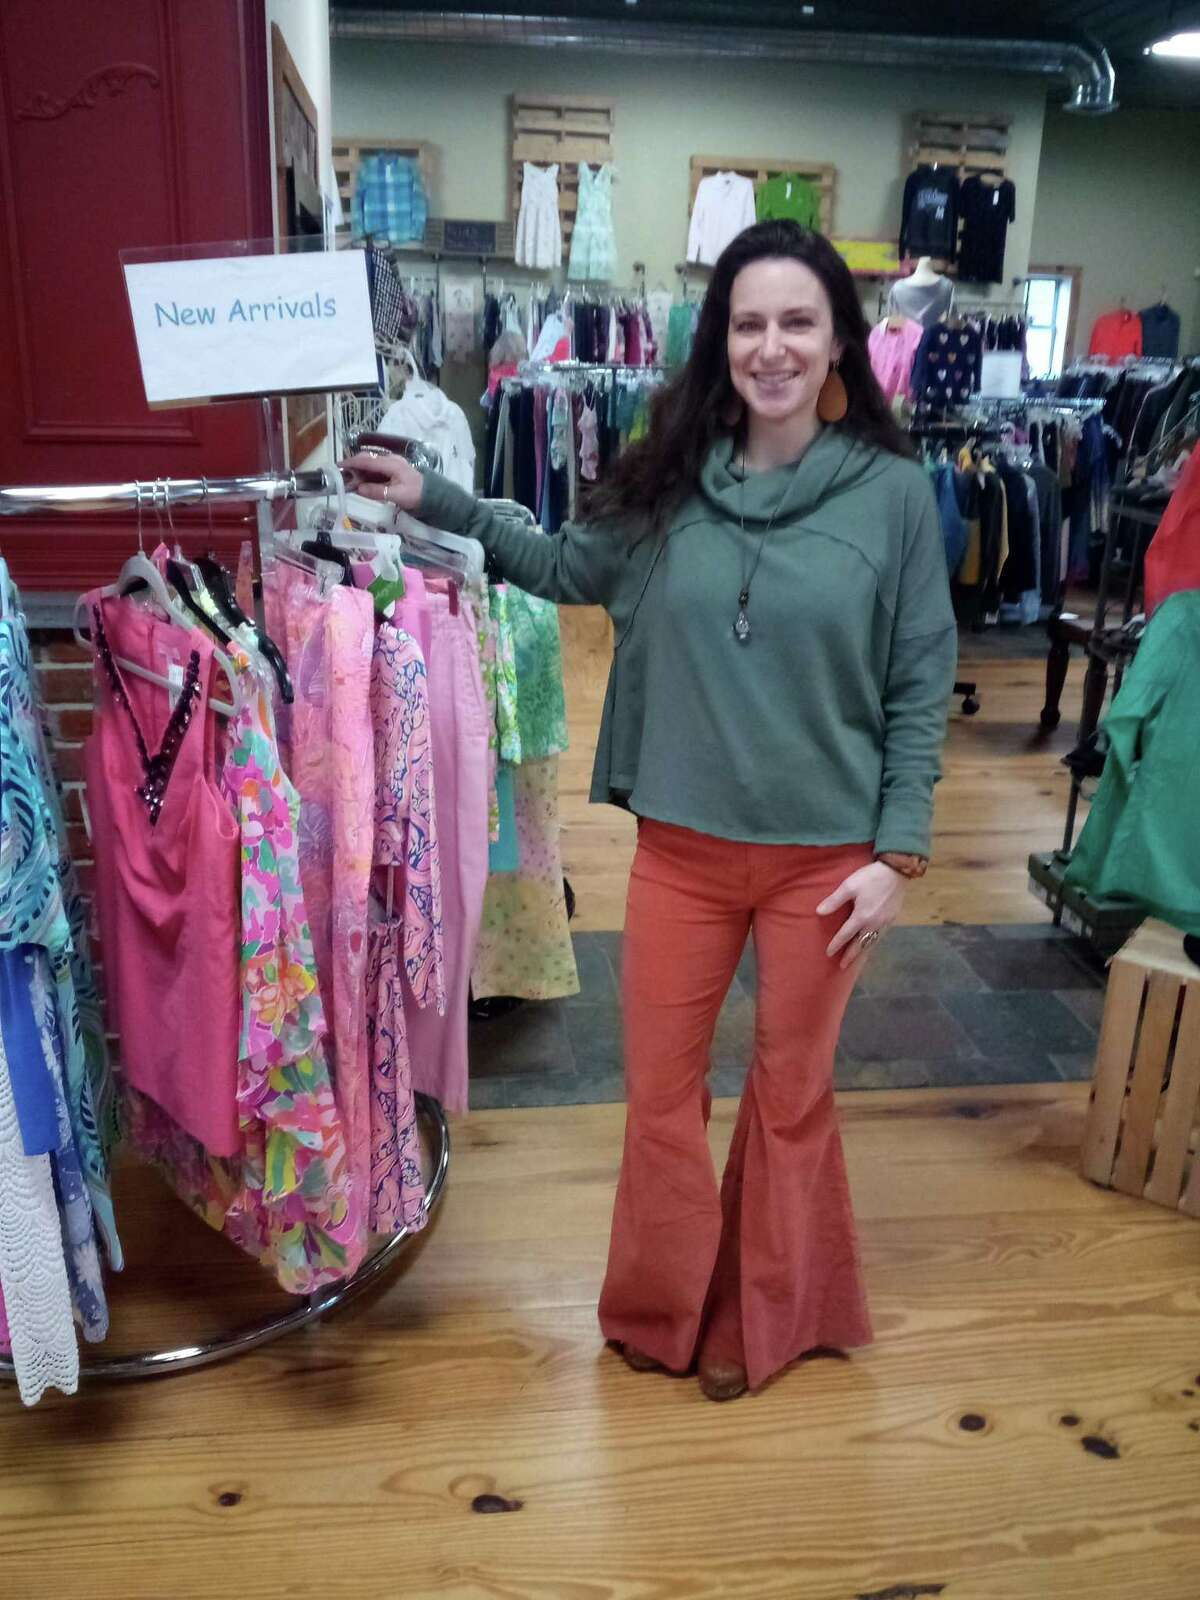 Rachel's Quality Consignment owner Rachel O'Mara has owned her Litchfield store for more than 20 years.